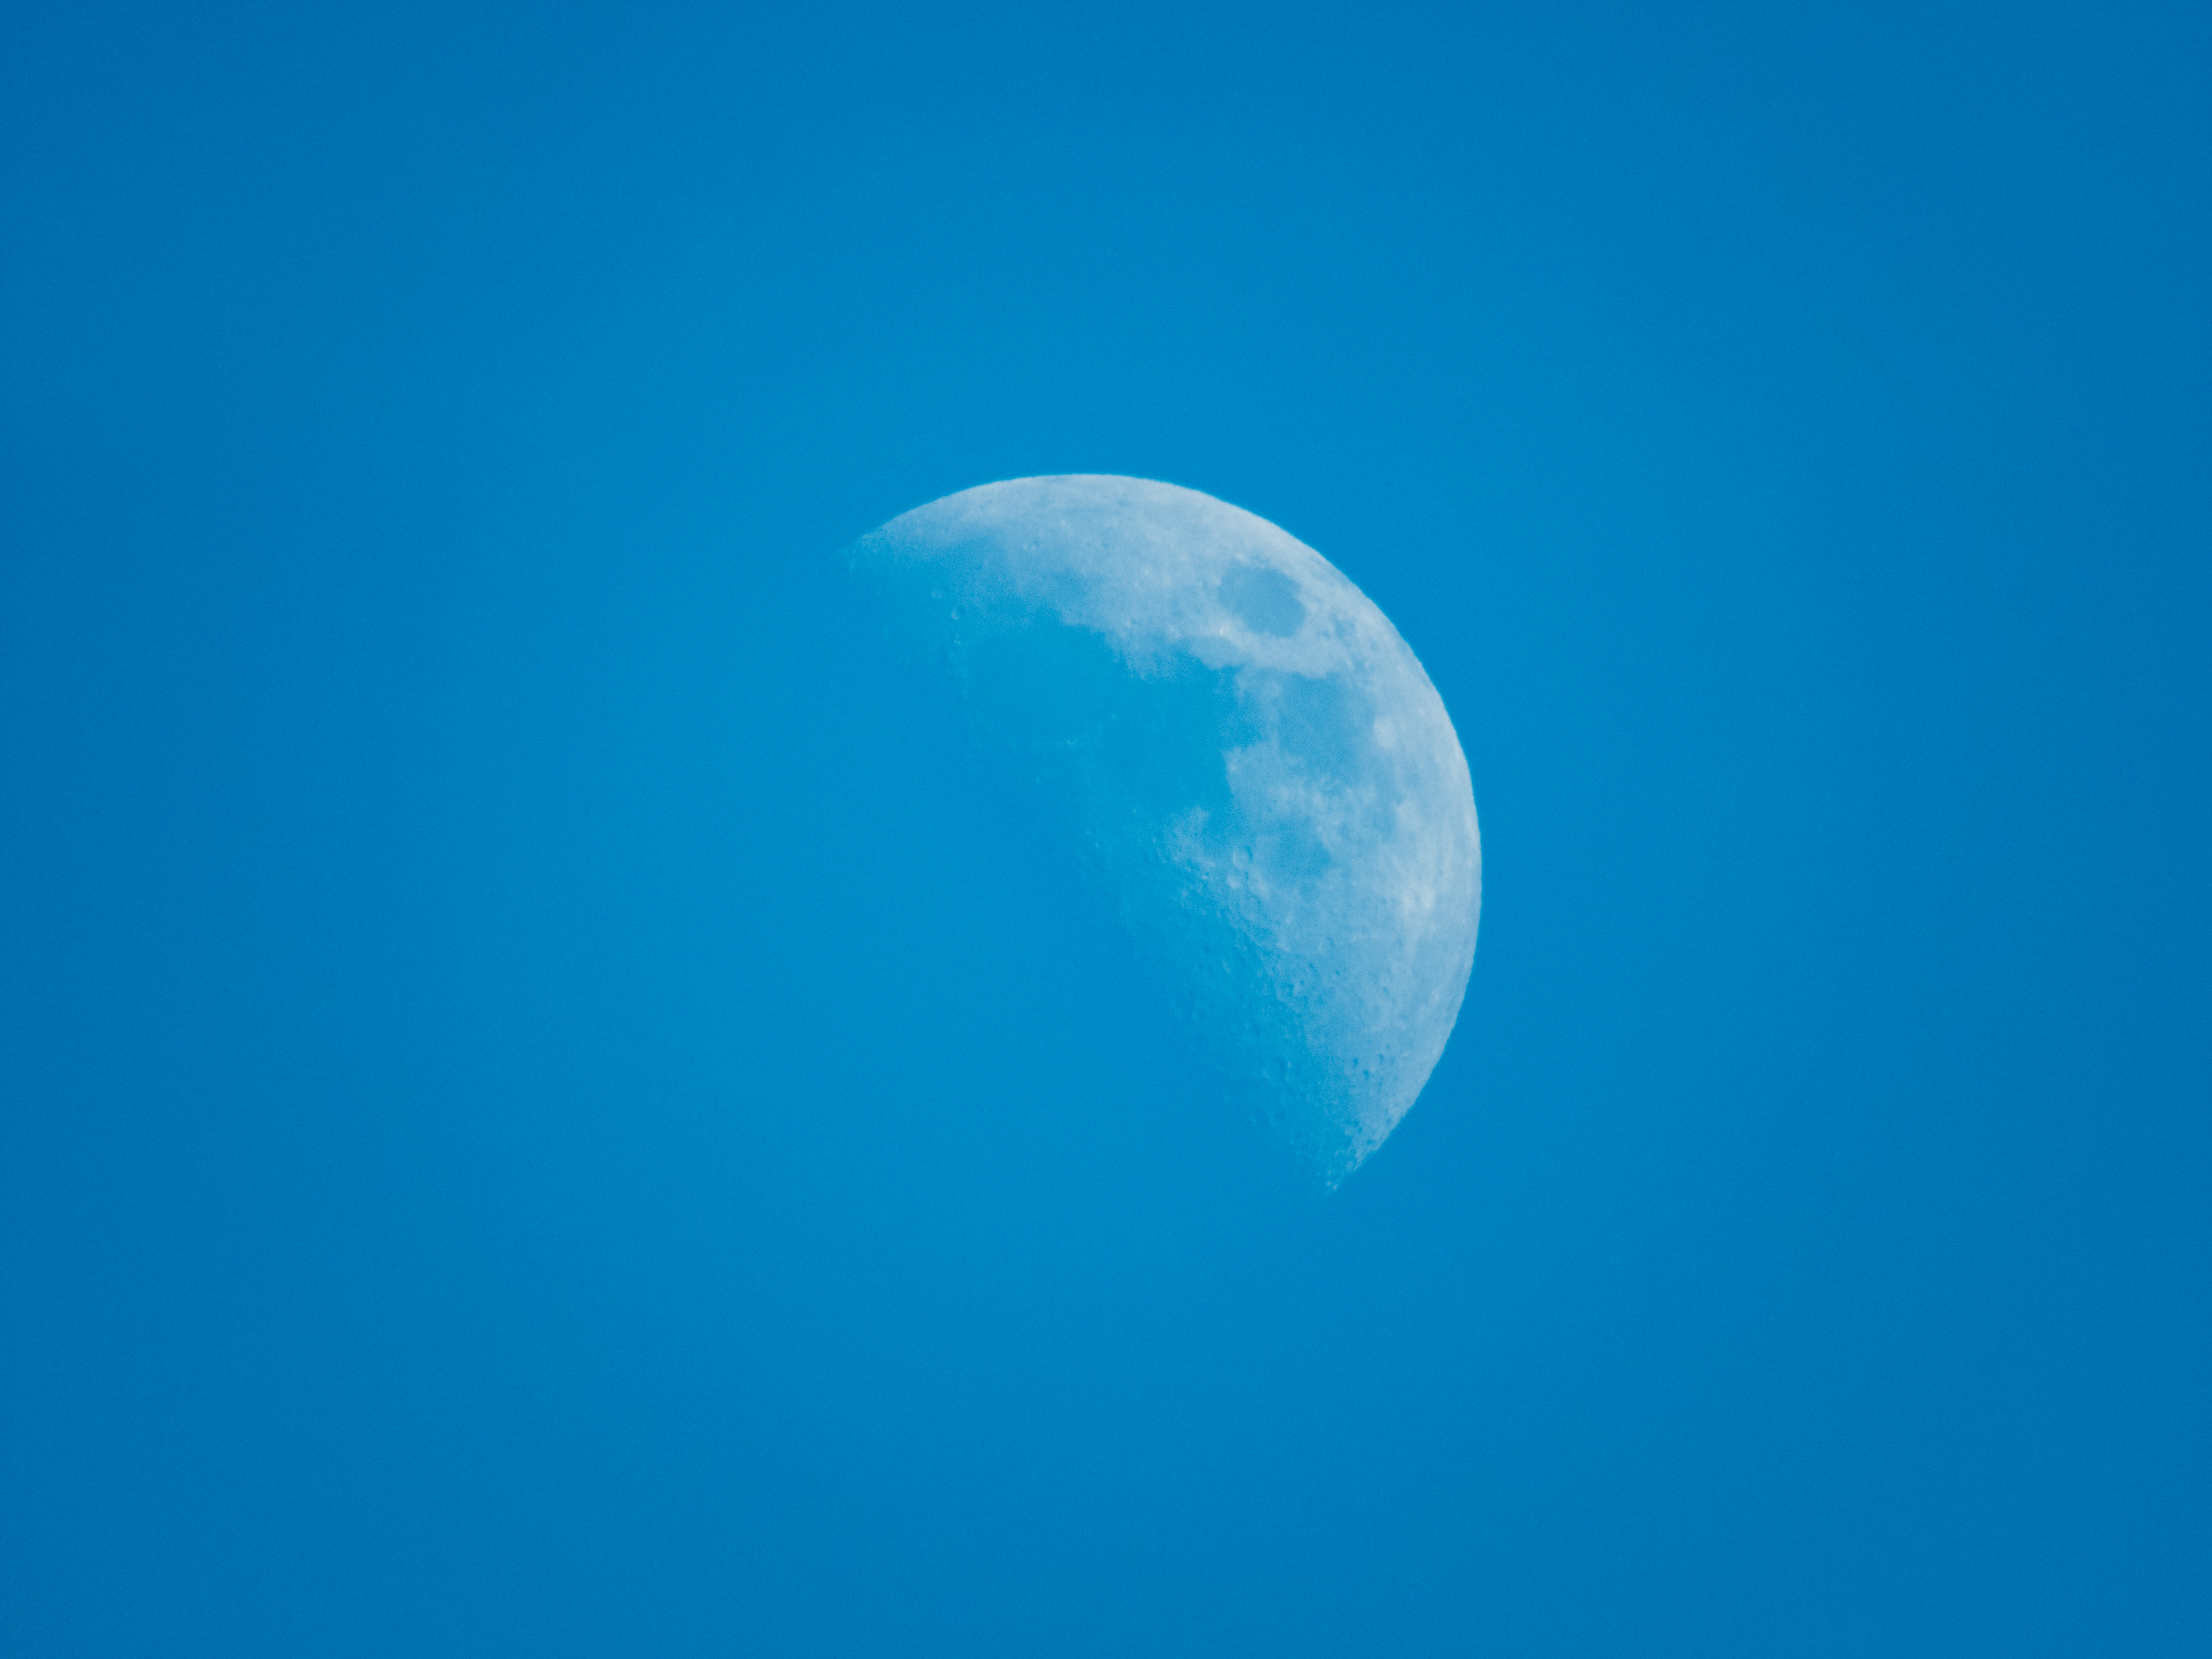 Moon in the blue sky, moon, sky, blue, light blue, clear, visible moon